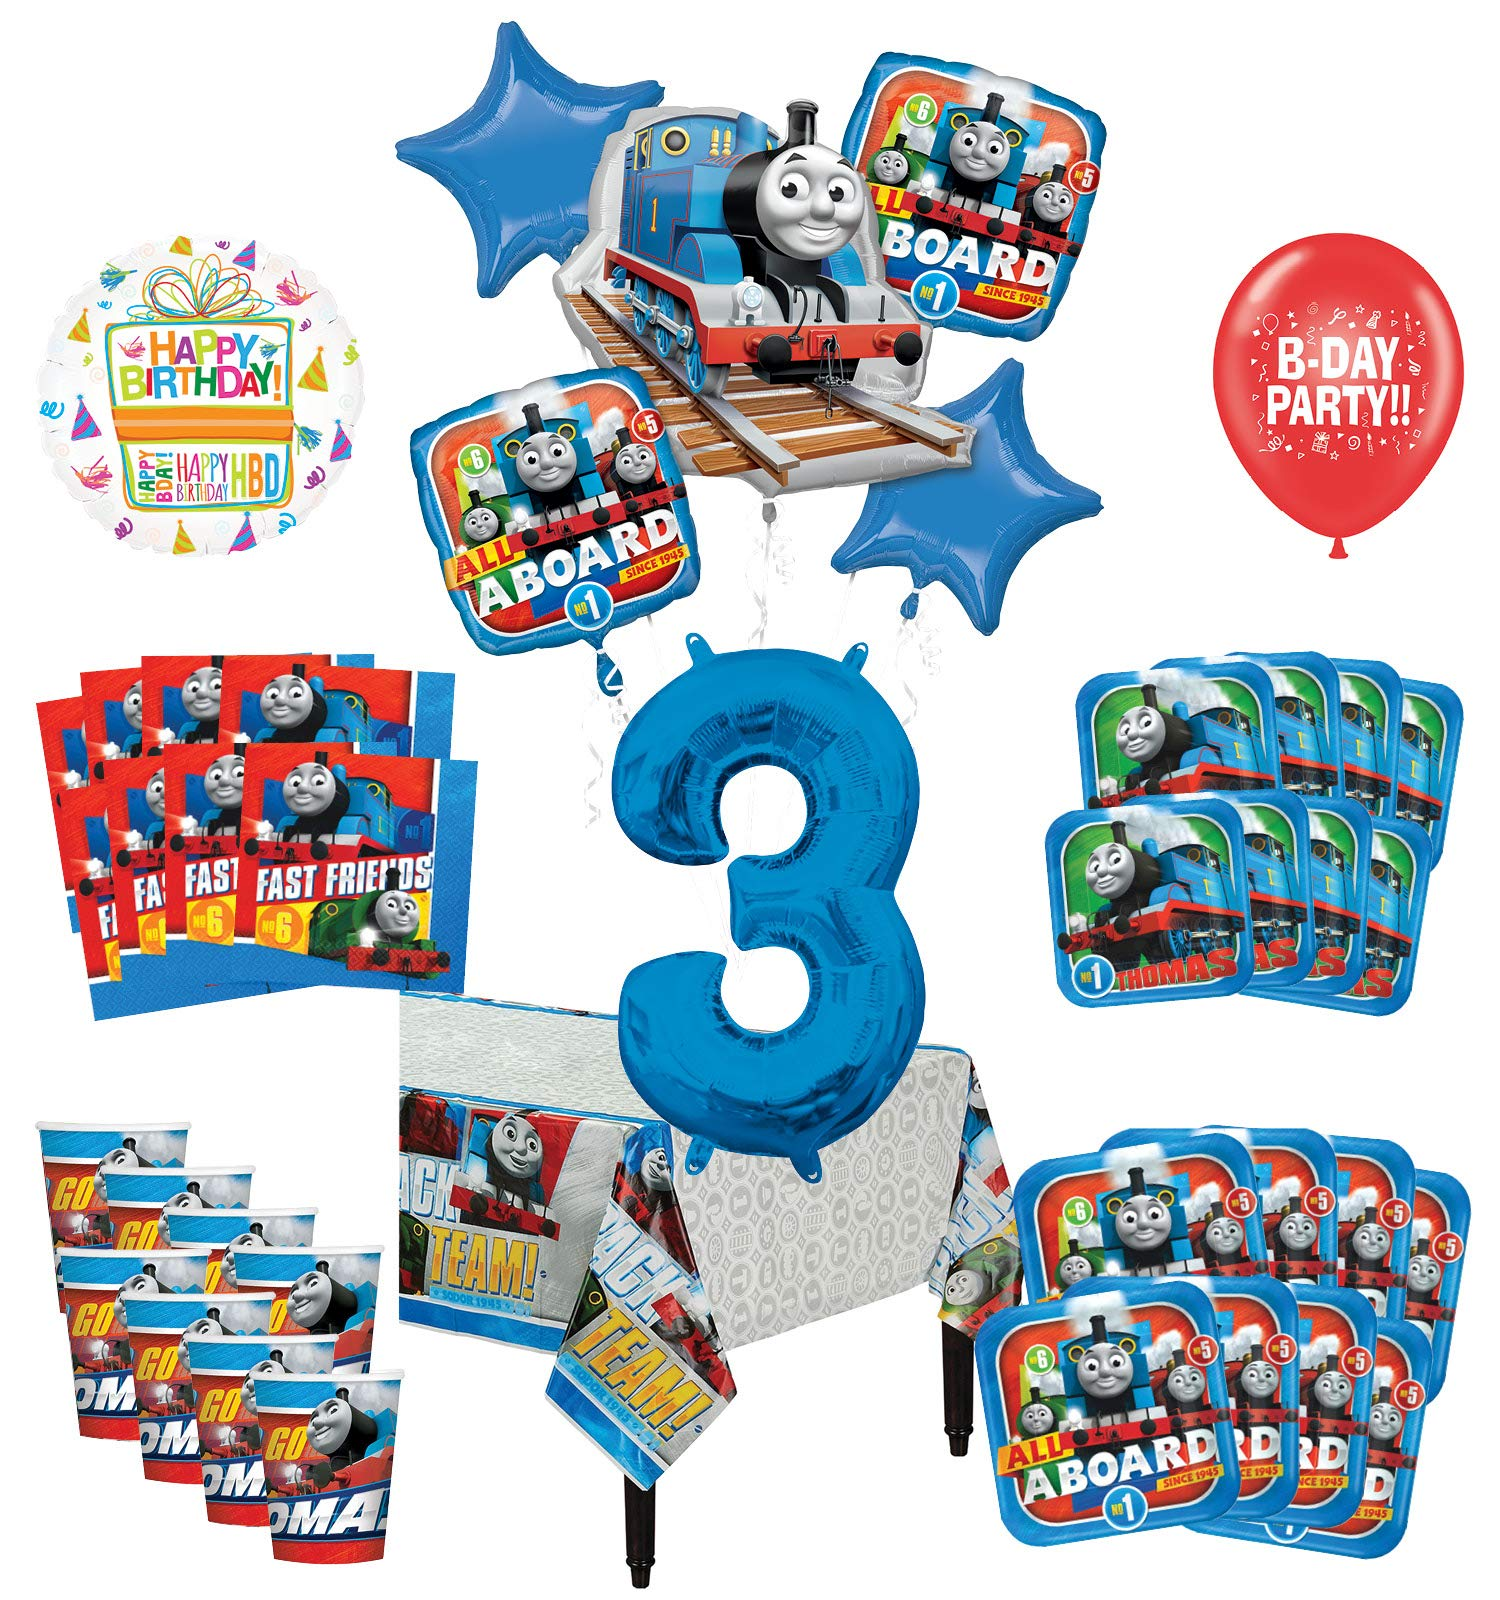 Mayflower Products Thomas The Train Tank Engine 3rd Birthday Party Supplies 16 Guest Decoration Kit and Balloon Bouquet